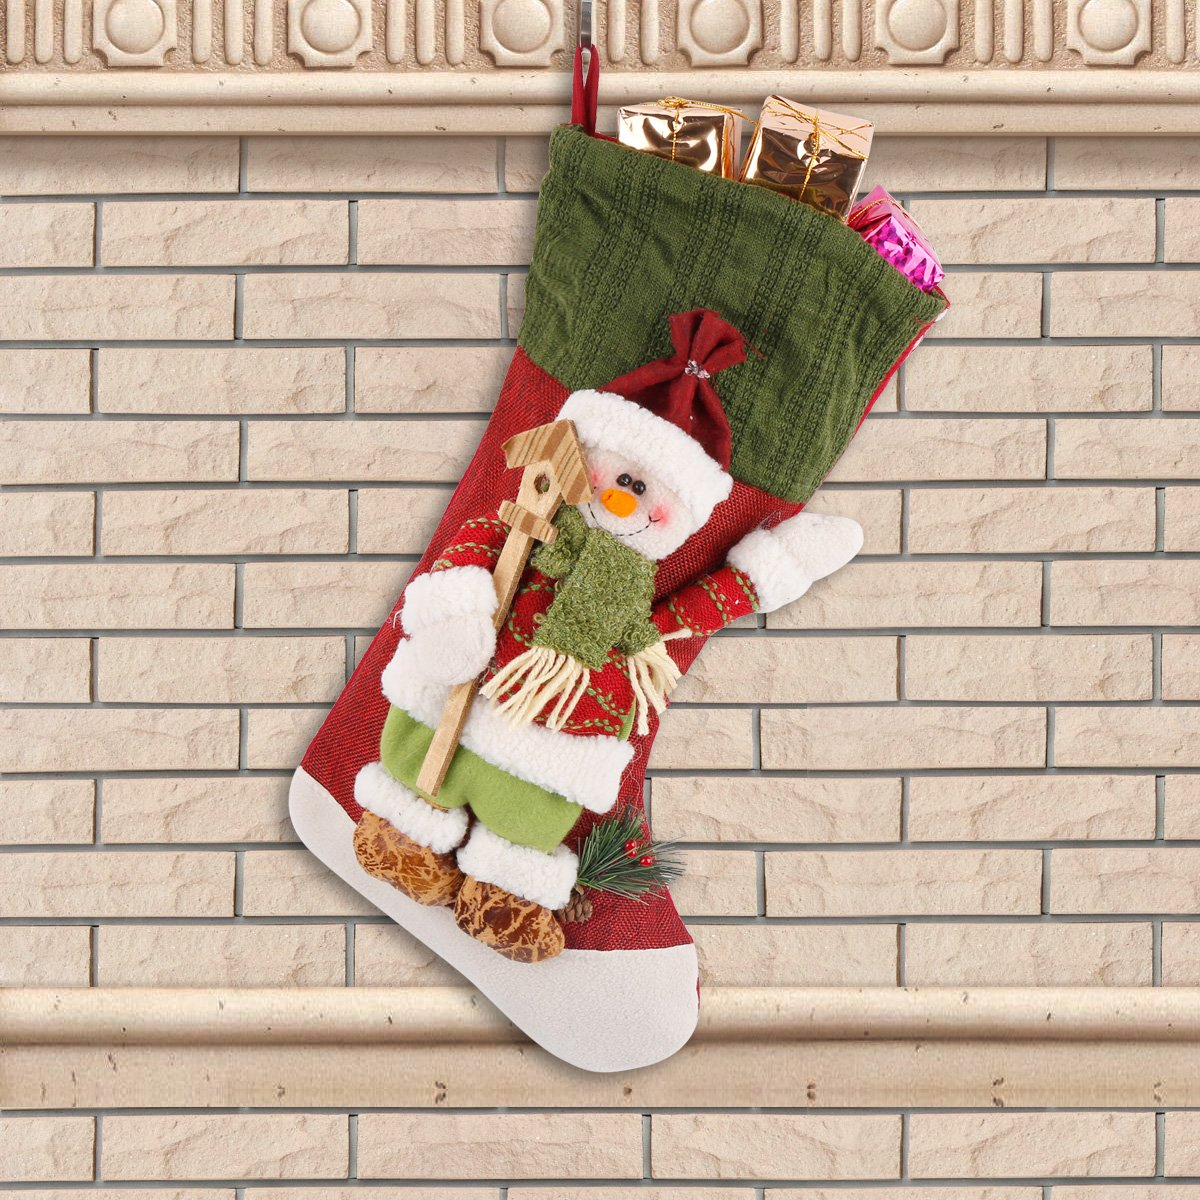 Moonmini 3d grande decorazione Natale Calza idea regalo Hanging Bag Cute Novelty Ornament Craft (Pupazzo di neve)